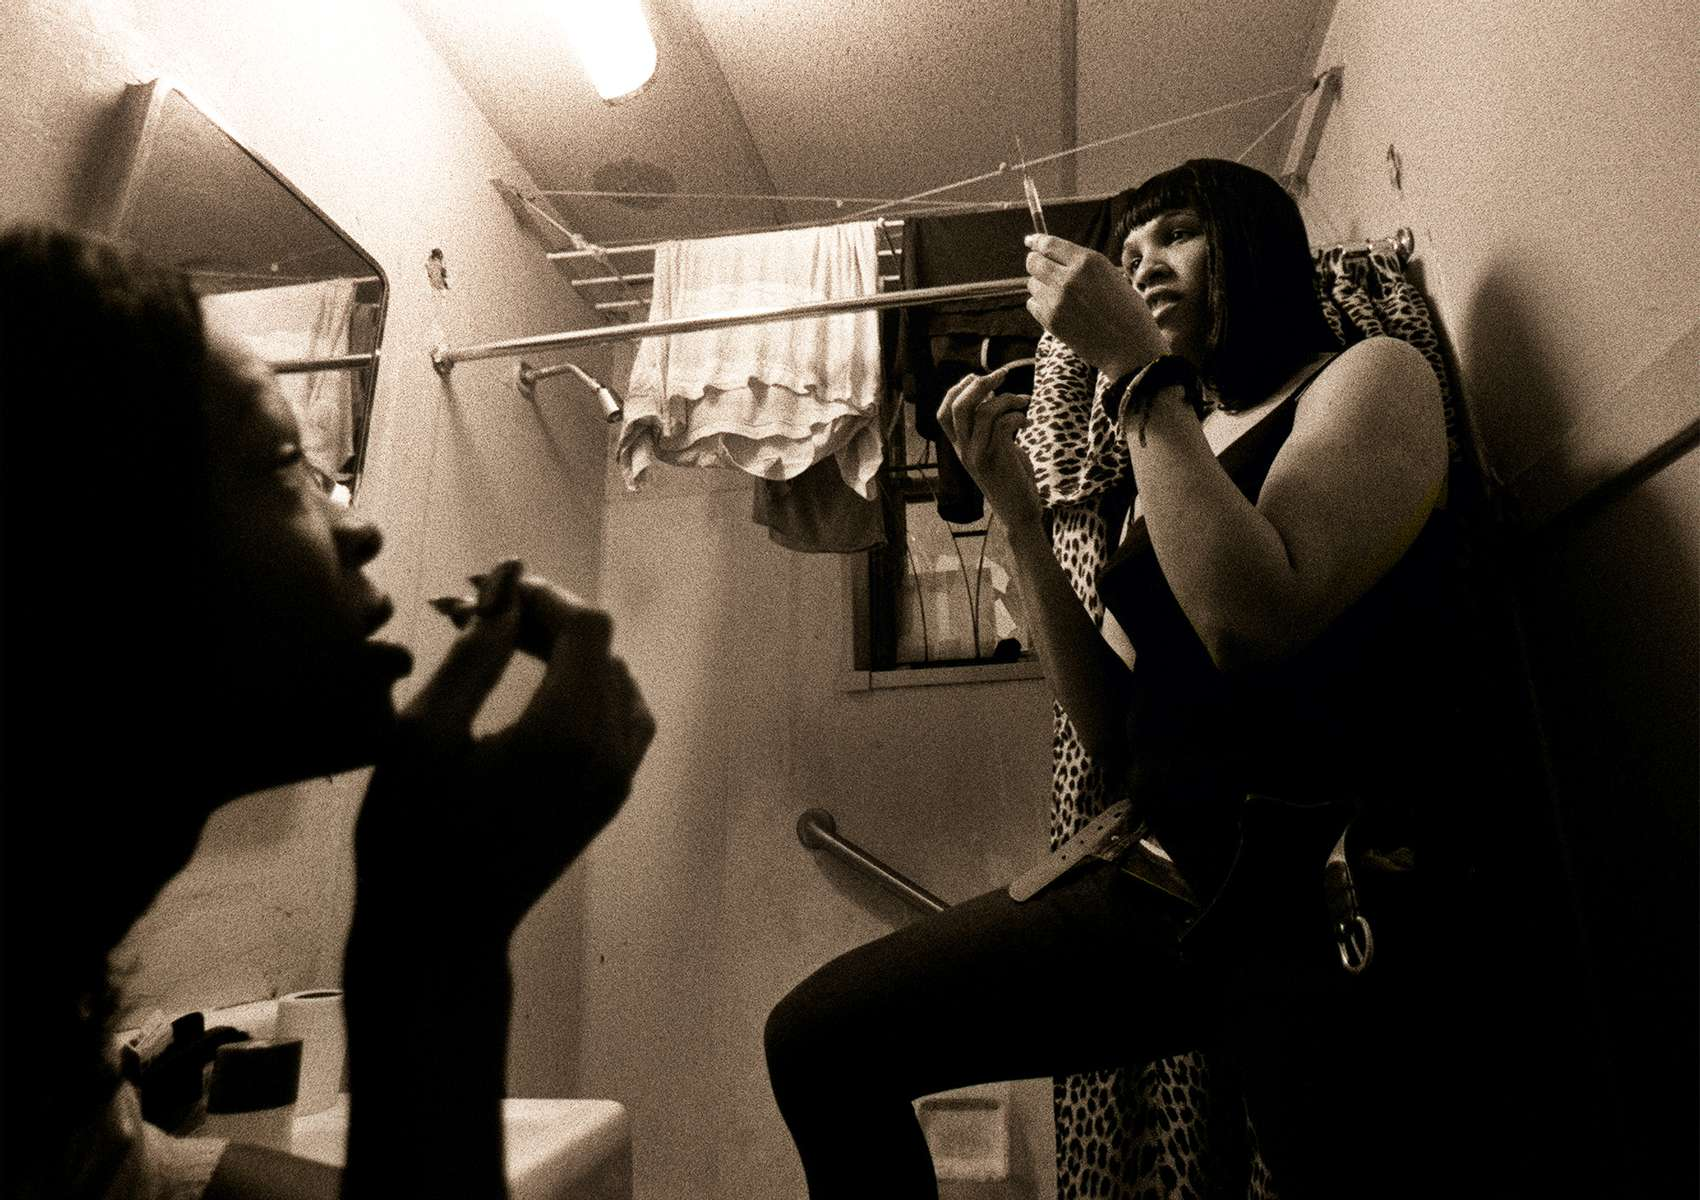 Kima prepares a shot containing 1 cc of Delestrogen and 5cc of Vitamin B12 for Charisse as Charisse looks on in Kima's bathrrom in Harlem Wednesday afternoon, December 1, 1999.  Kima and Charisse buy the hormones on the black market, and take 1 cc of Delestrogen every two weeks via muscular injection. It helps smooth skin, increase body fat, make the body more curvaceous.  The noted side effects are cramping, headaches, occasional fever, and liver damage.